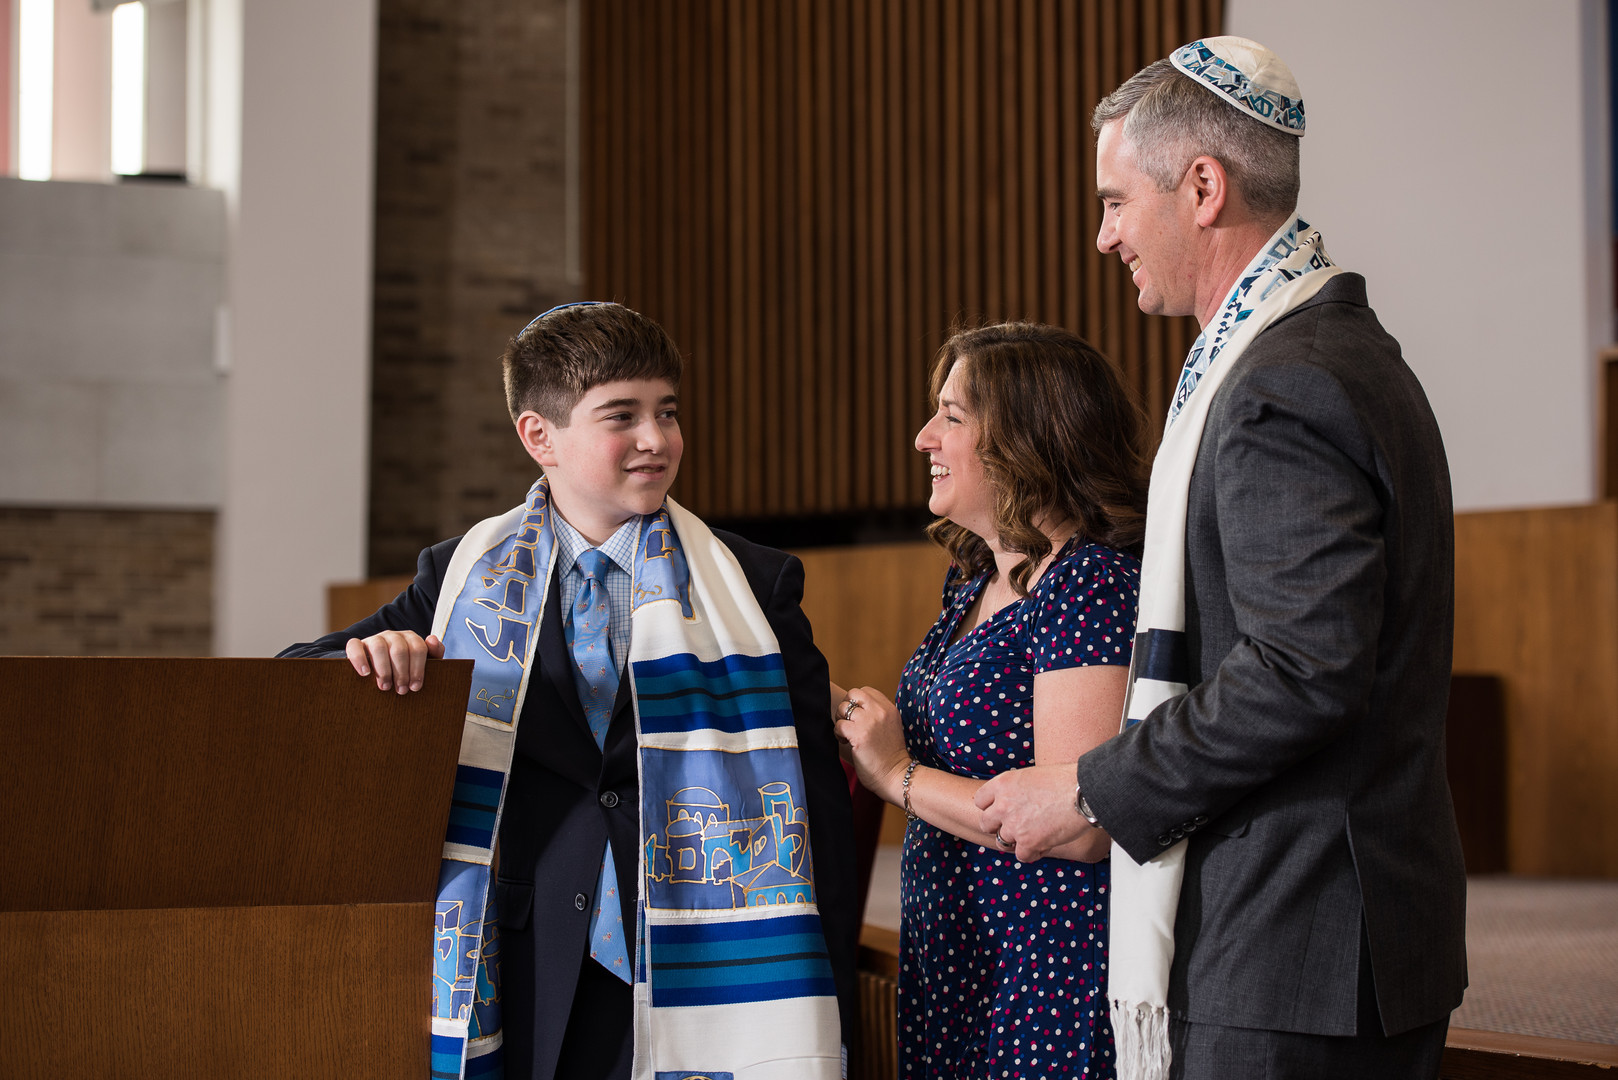 cleveland_bar mitzvah_photography_129.jp